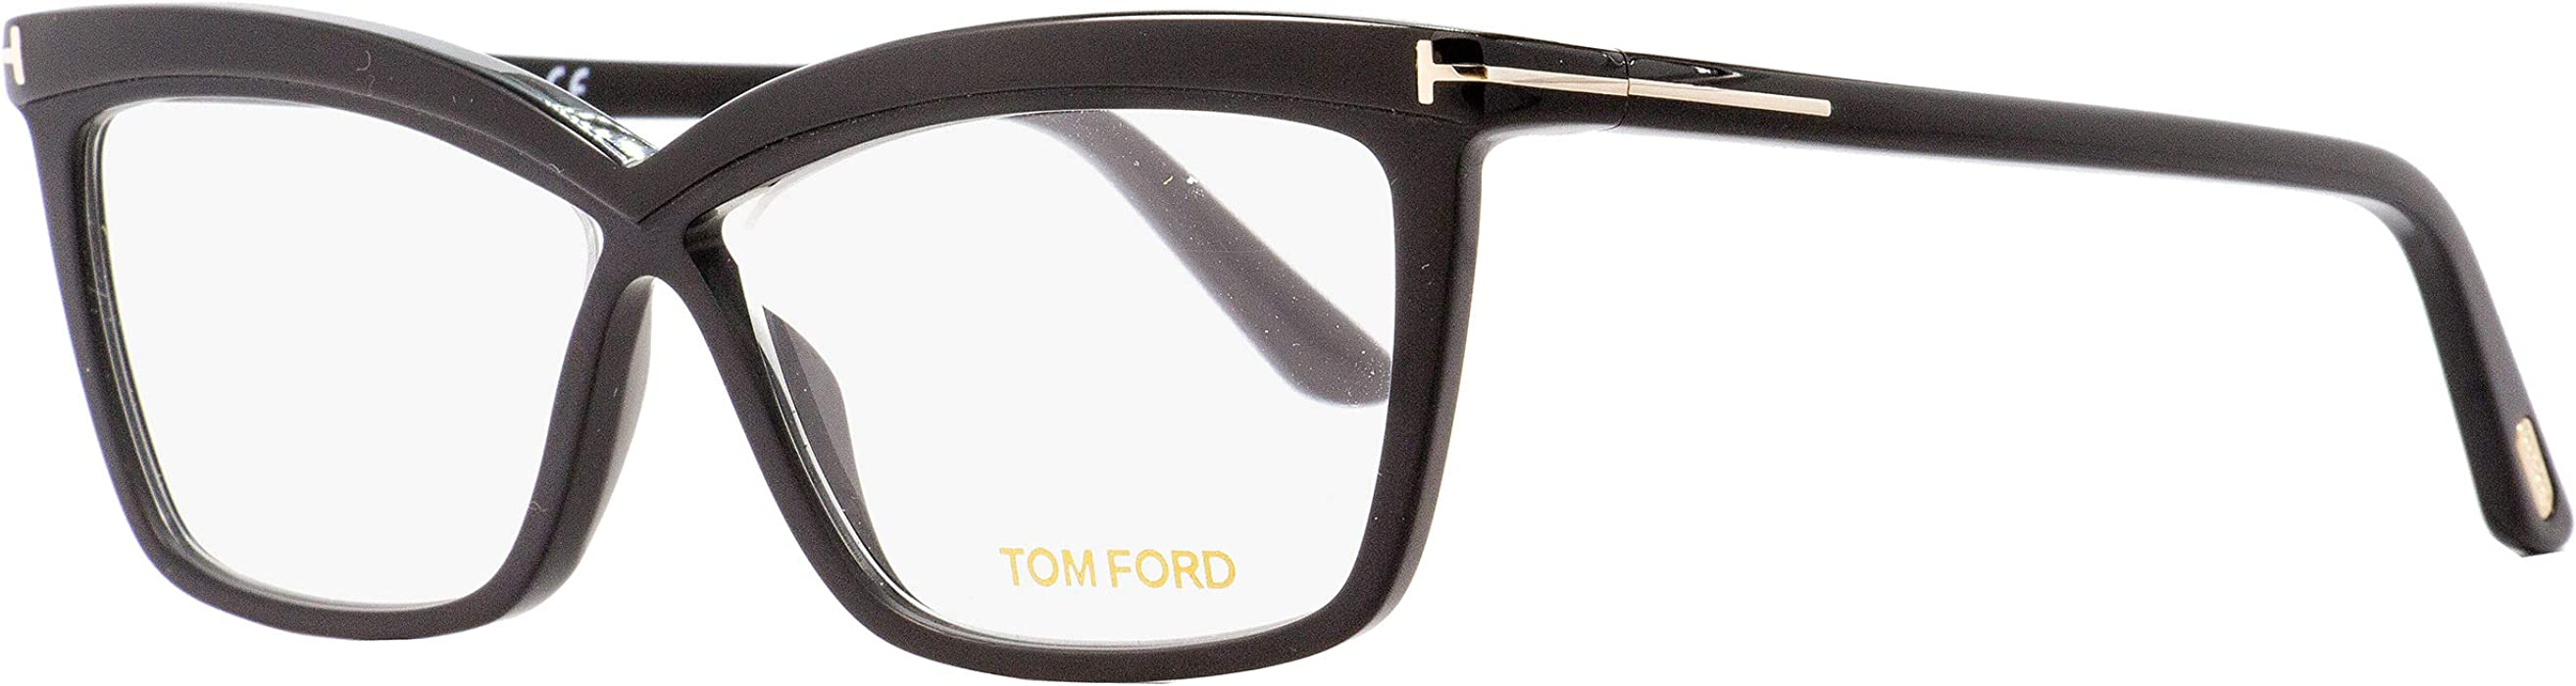 227d7256b748a Amazon.com  Tom Ford Butterfly Eyeglasses TF5470 001 Black 55mm ...